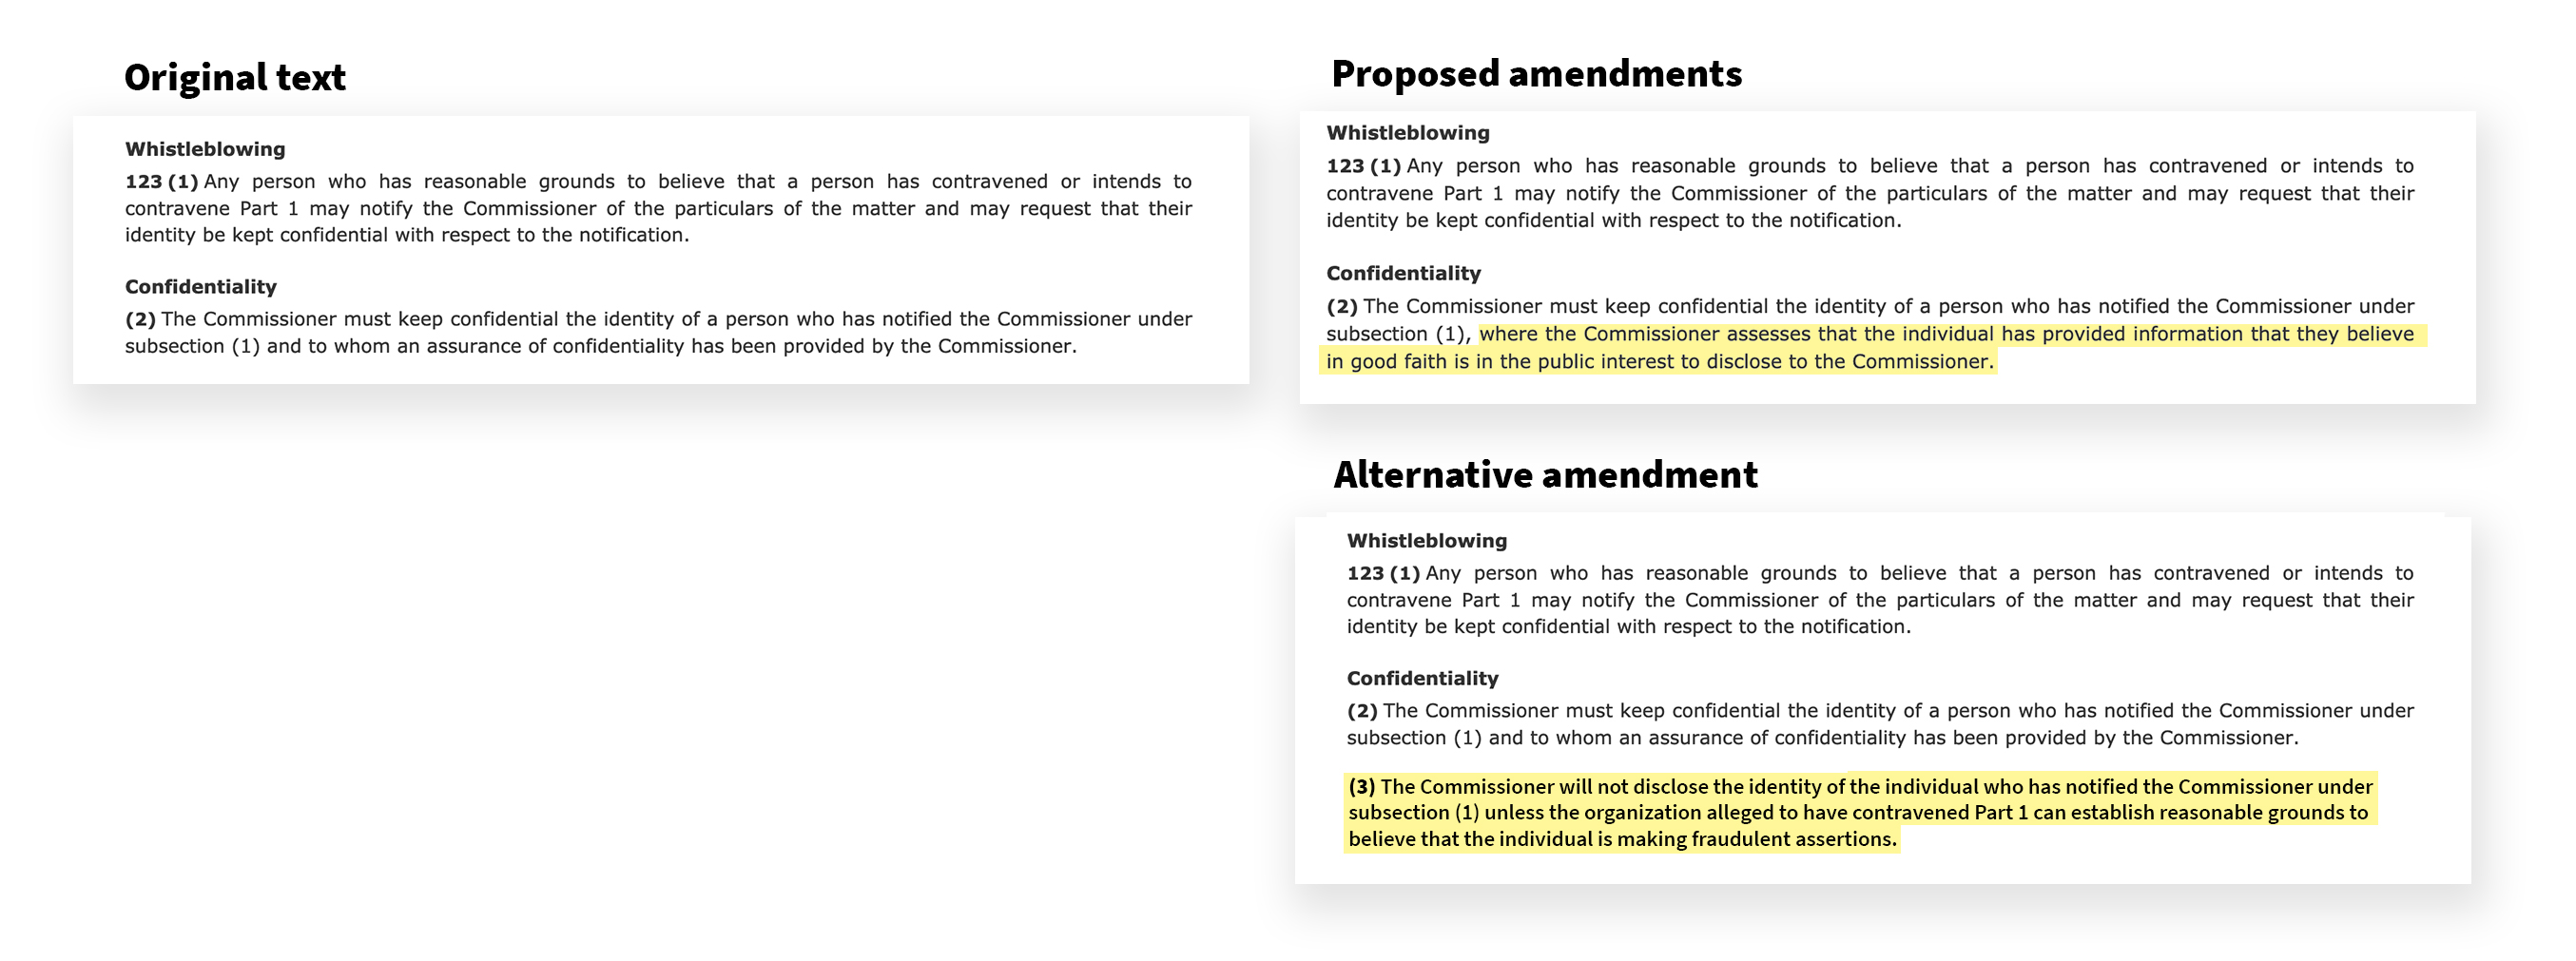 Screengrab of the original bill and proposed amendments to the Bill side by side.